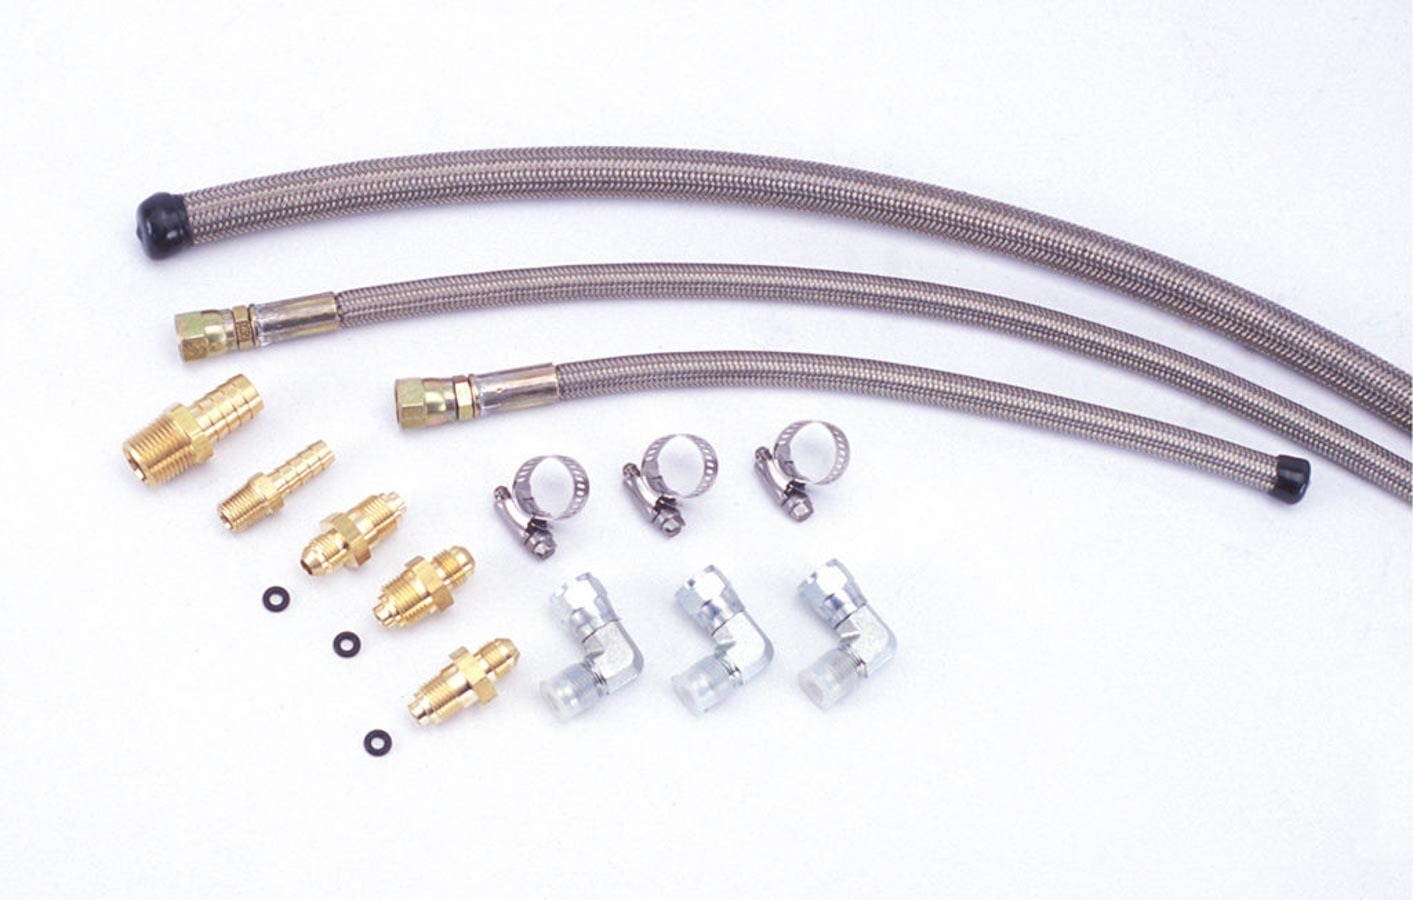 Flaming River Stainless Braided Hose Kit